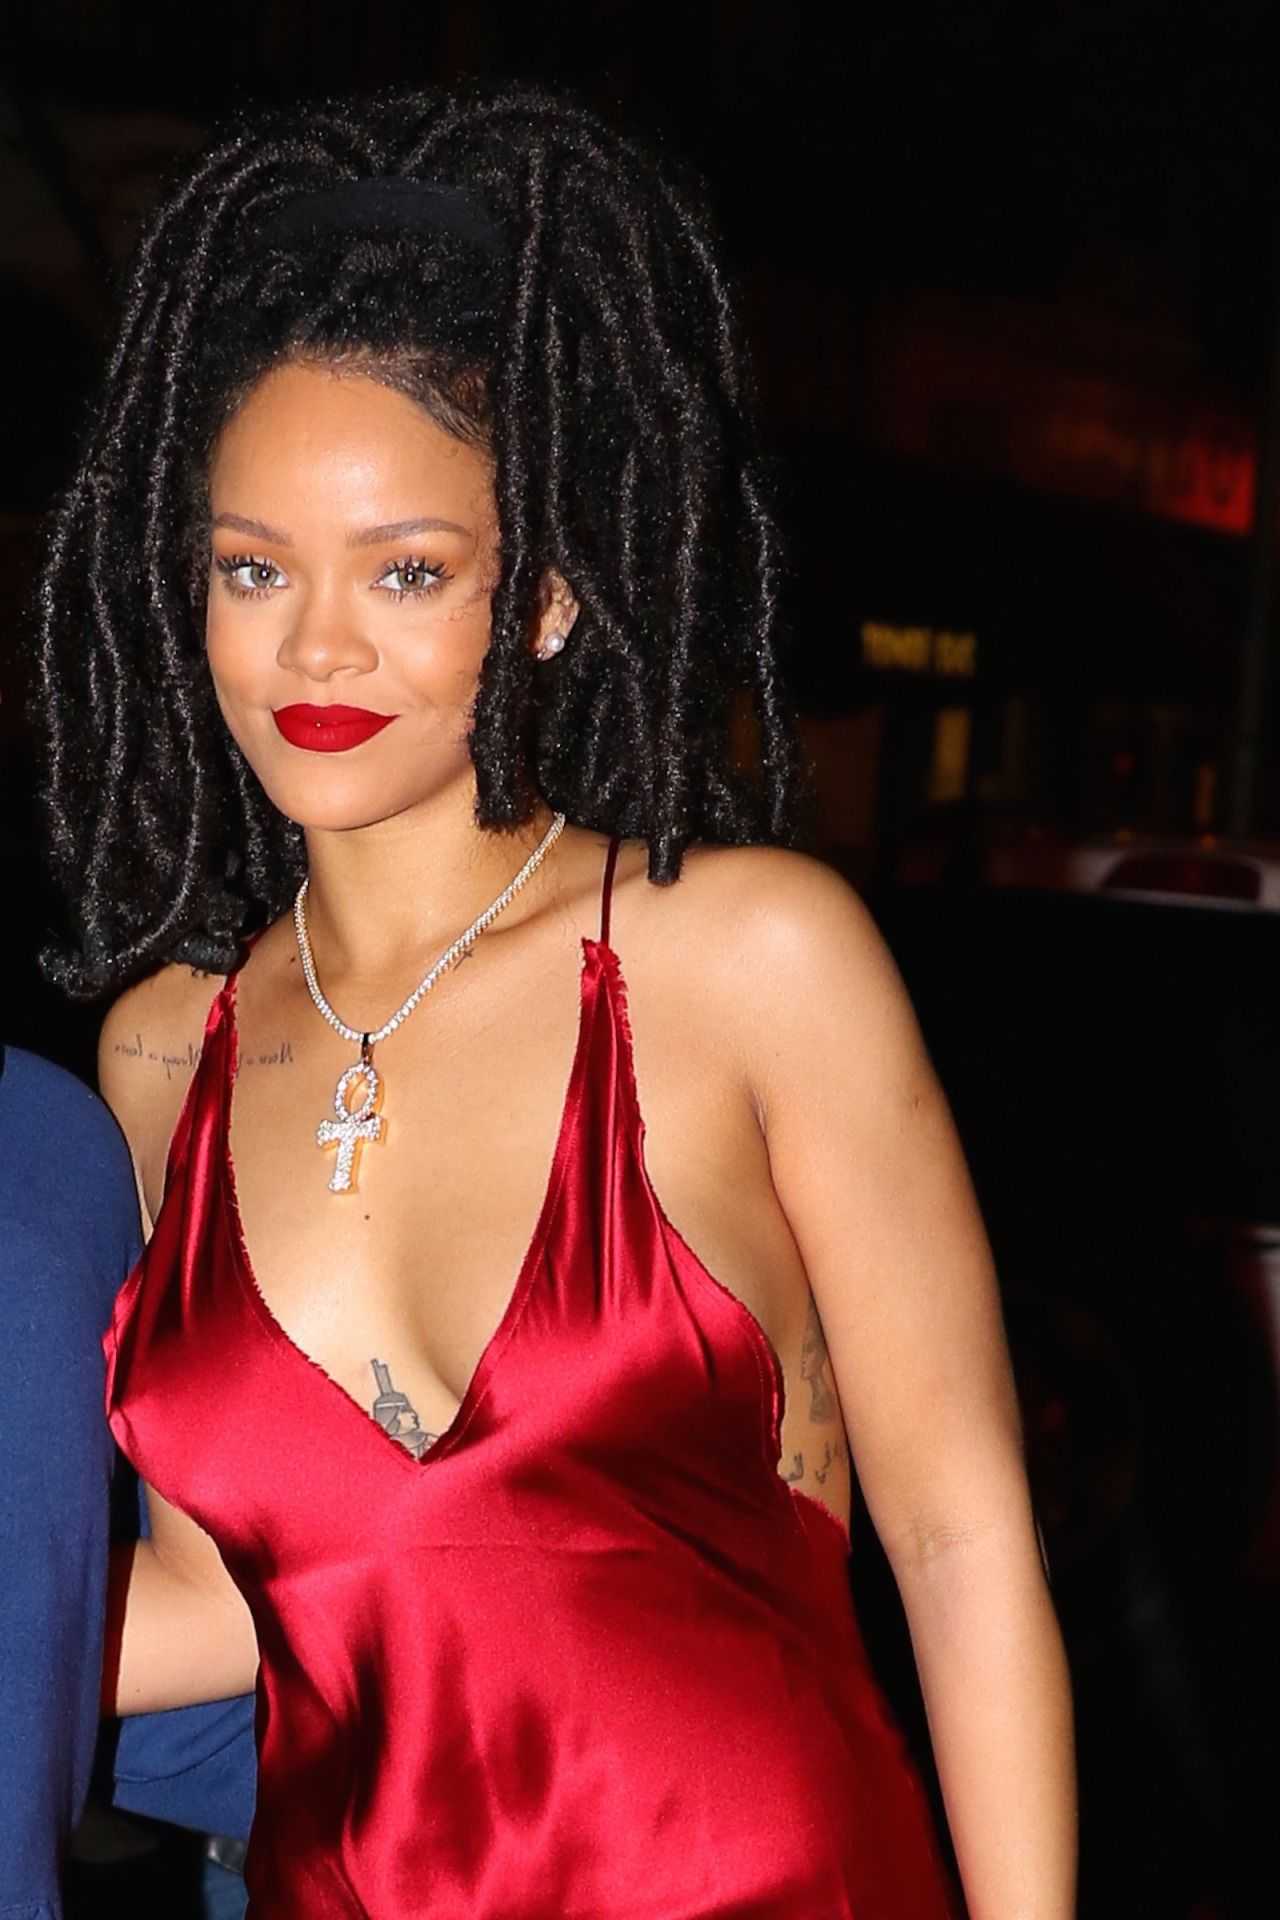 Rihanna Night Out Style - Arriving at Carbone Restaurant ... Rihanna 2016